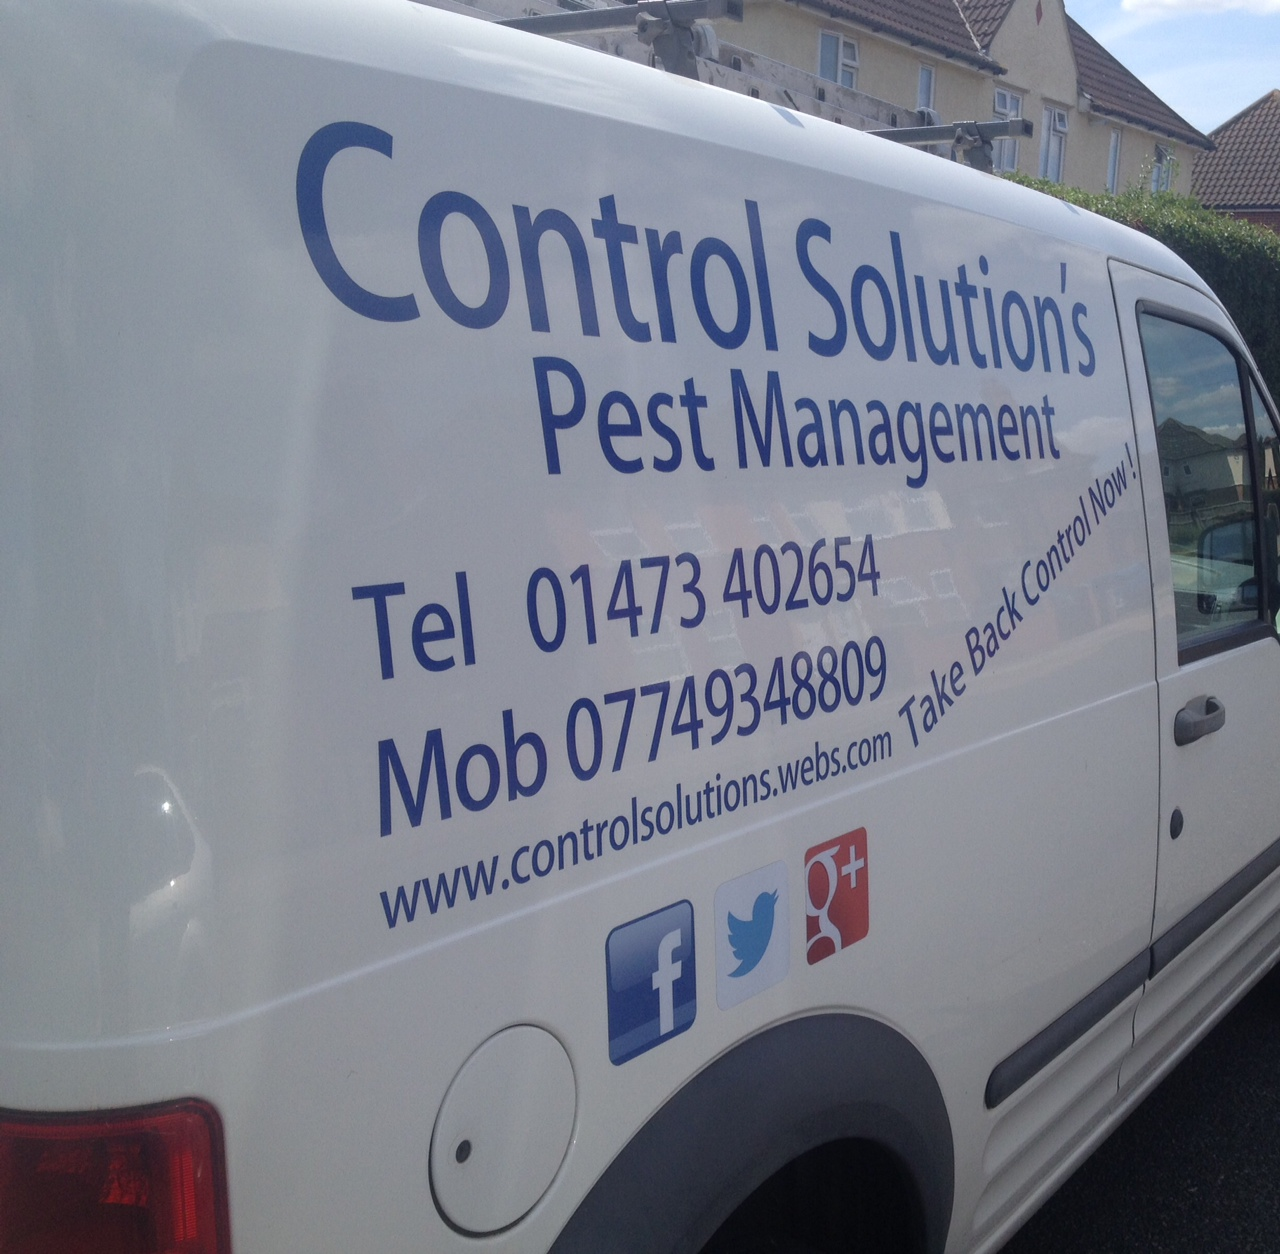 Control Solutions Pest Control, 3 Byron Road, Ipswich, Suffolk, IP1 6JE, UK